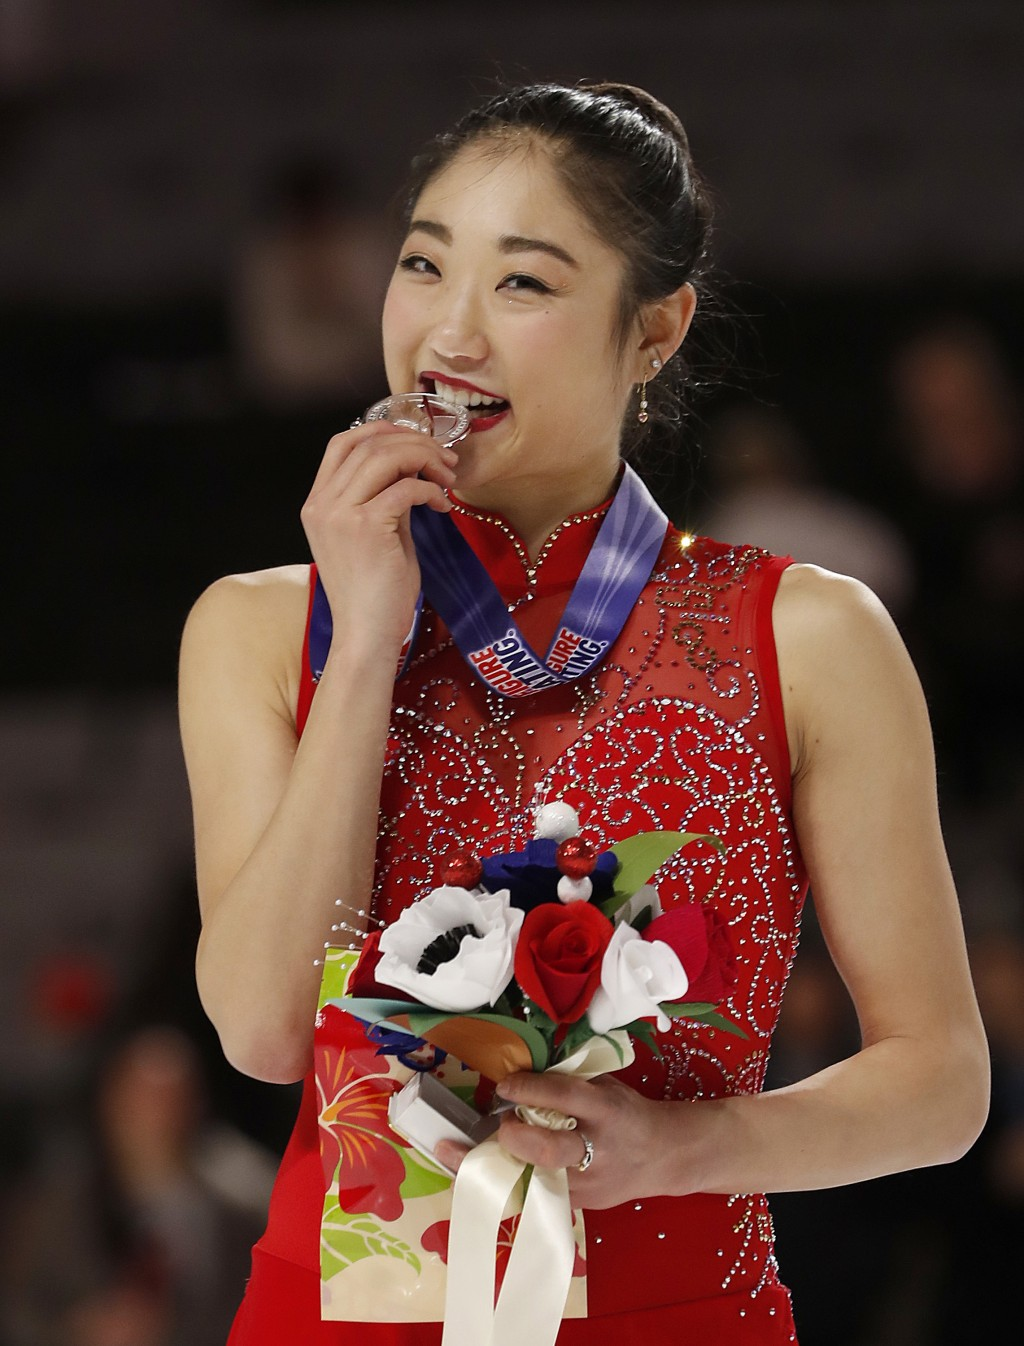 FILE - In this Jan. 5, 2018, file photo, Mirai Nagasu poses after finishing second in the women's free skate event at the U.S. Figure Skating Champion